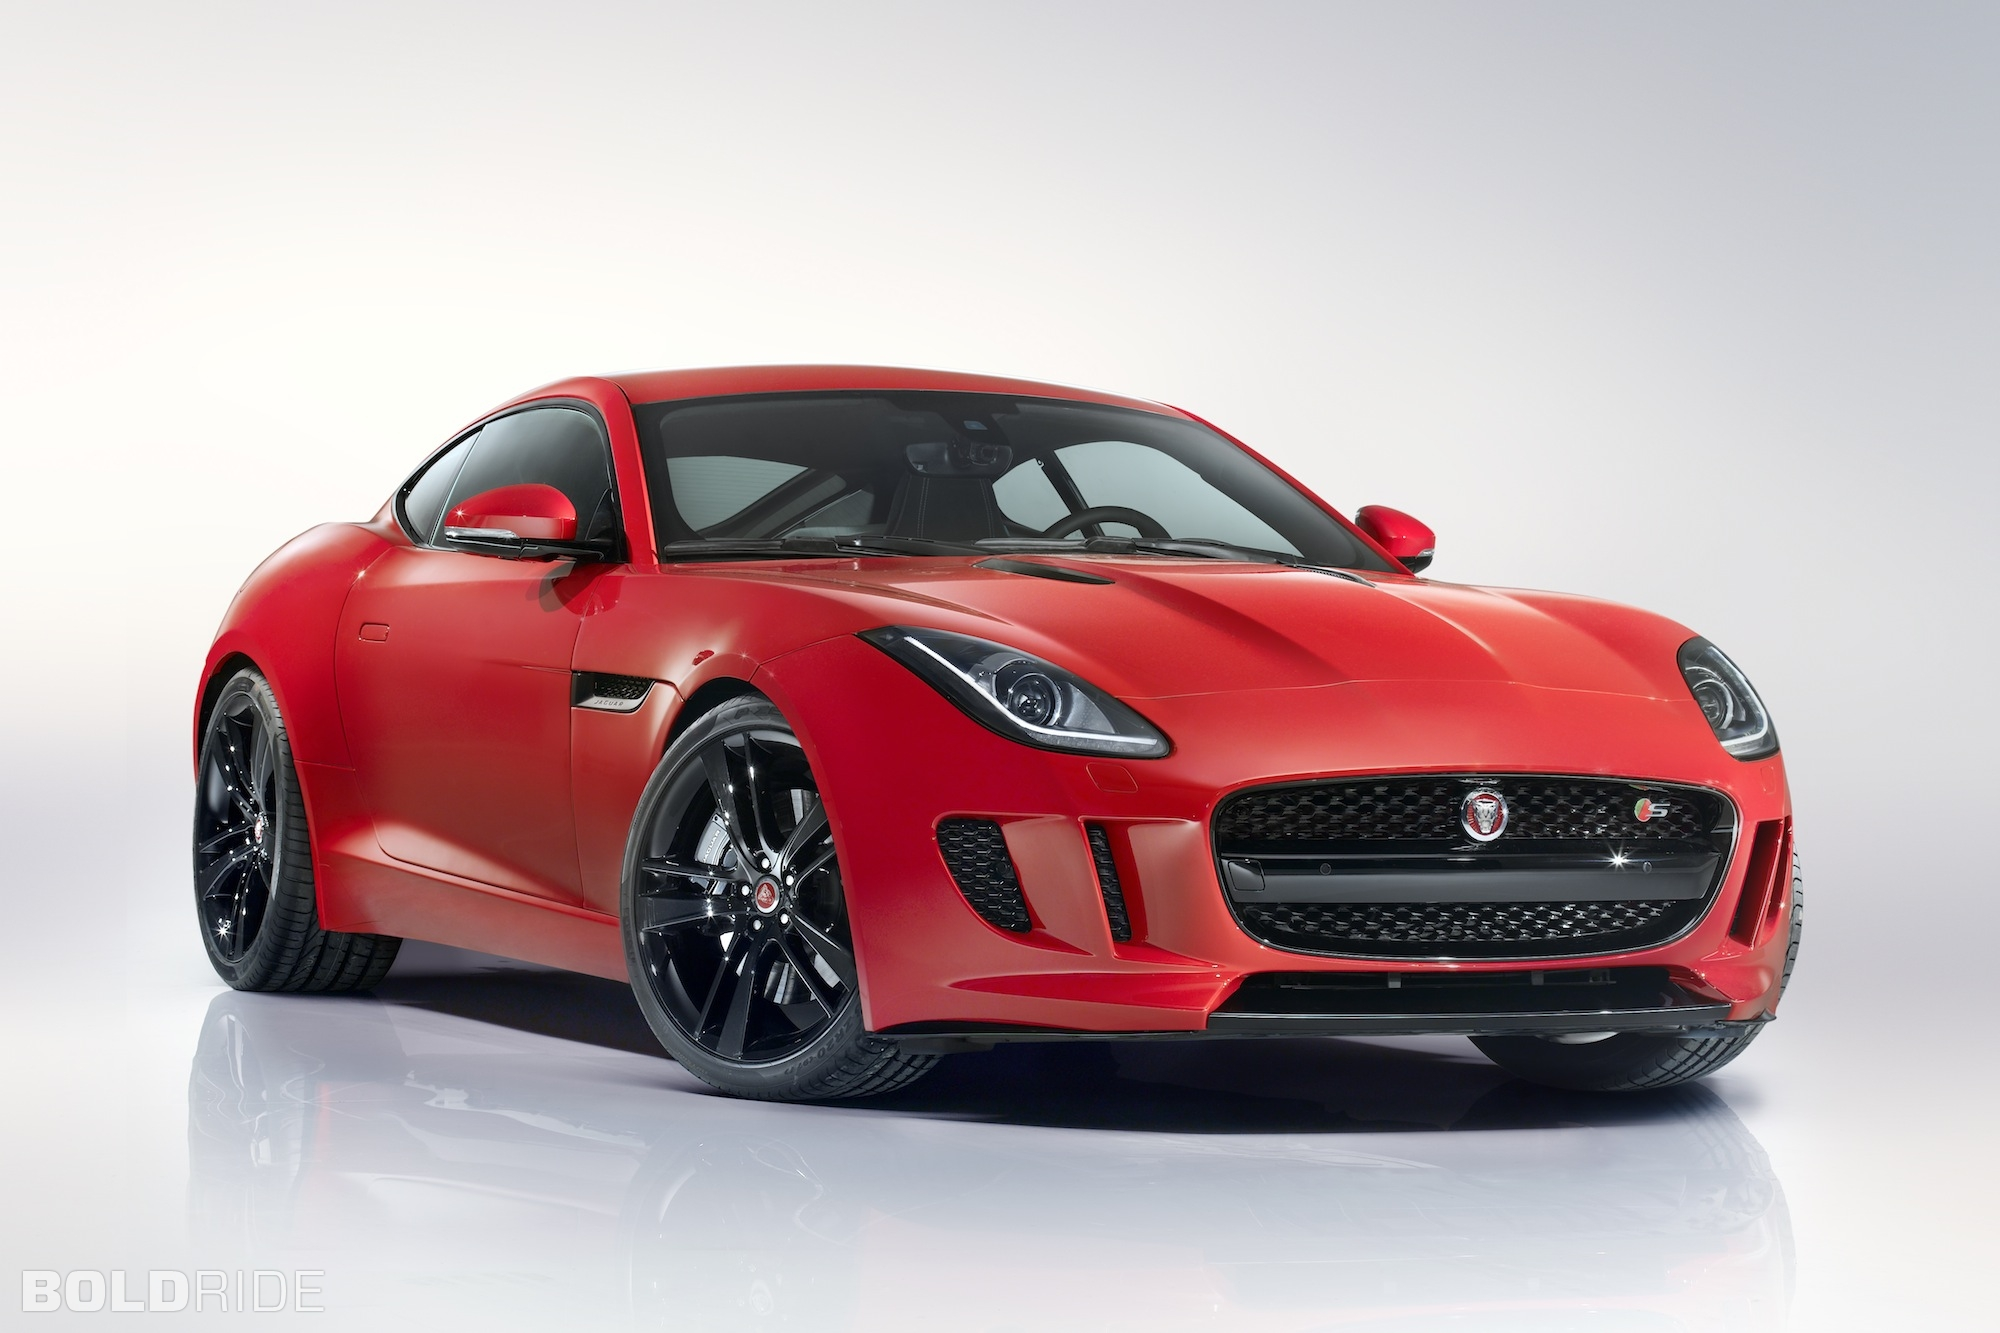 2015 Jaguar F-Type Coupe 2000 x 1333